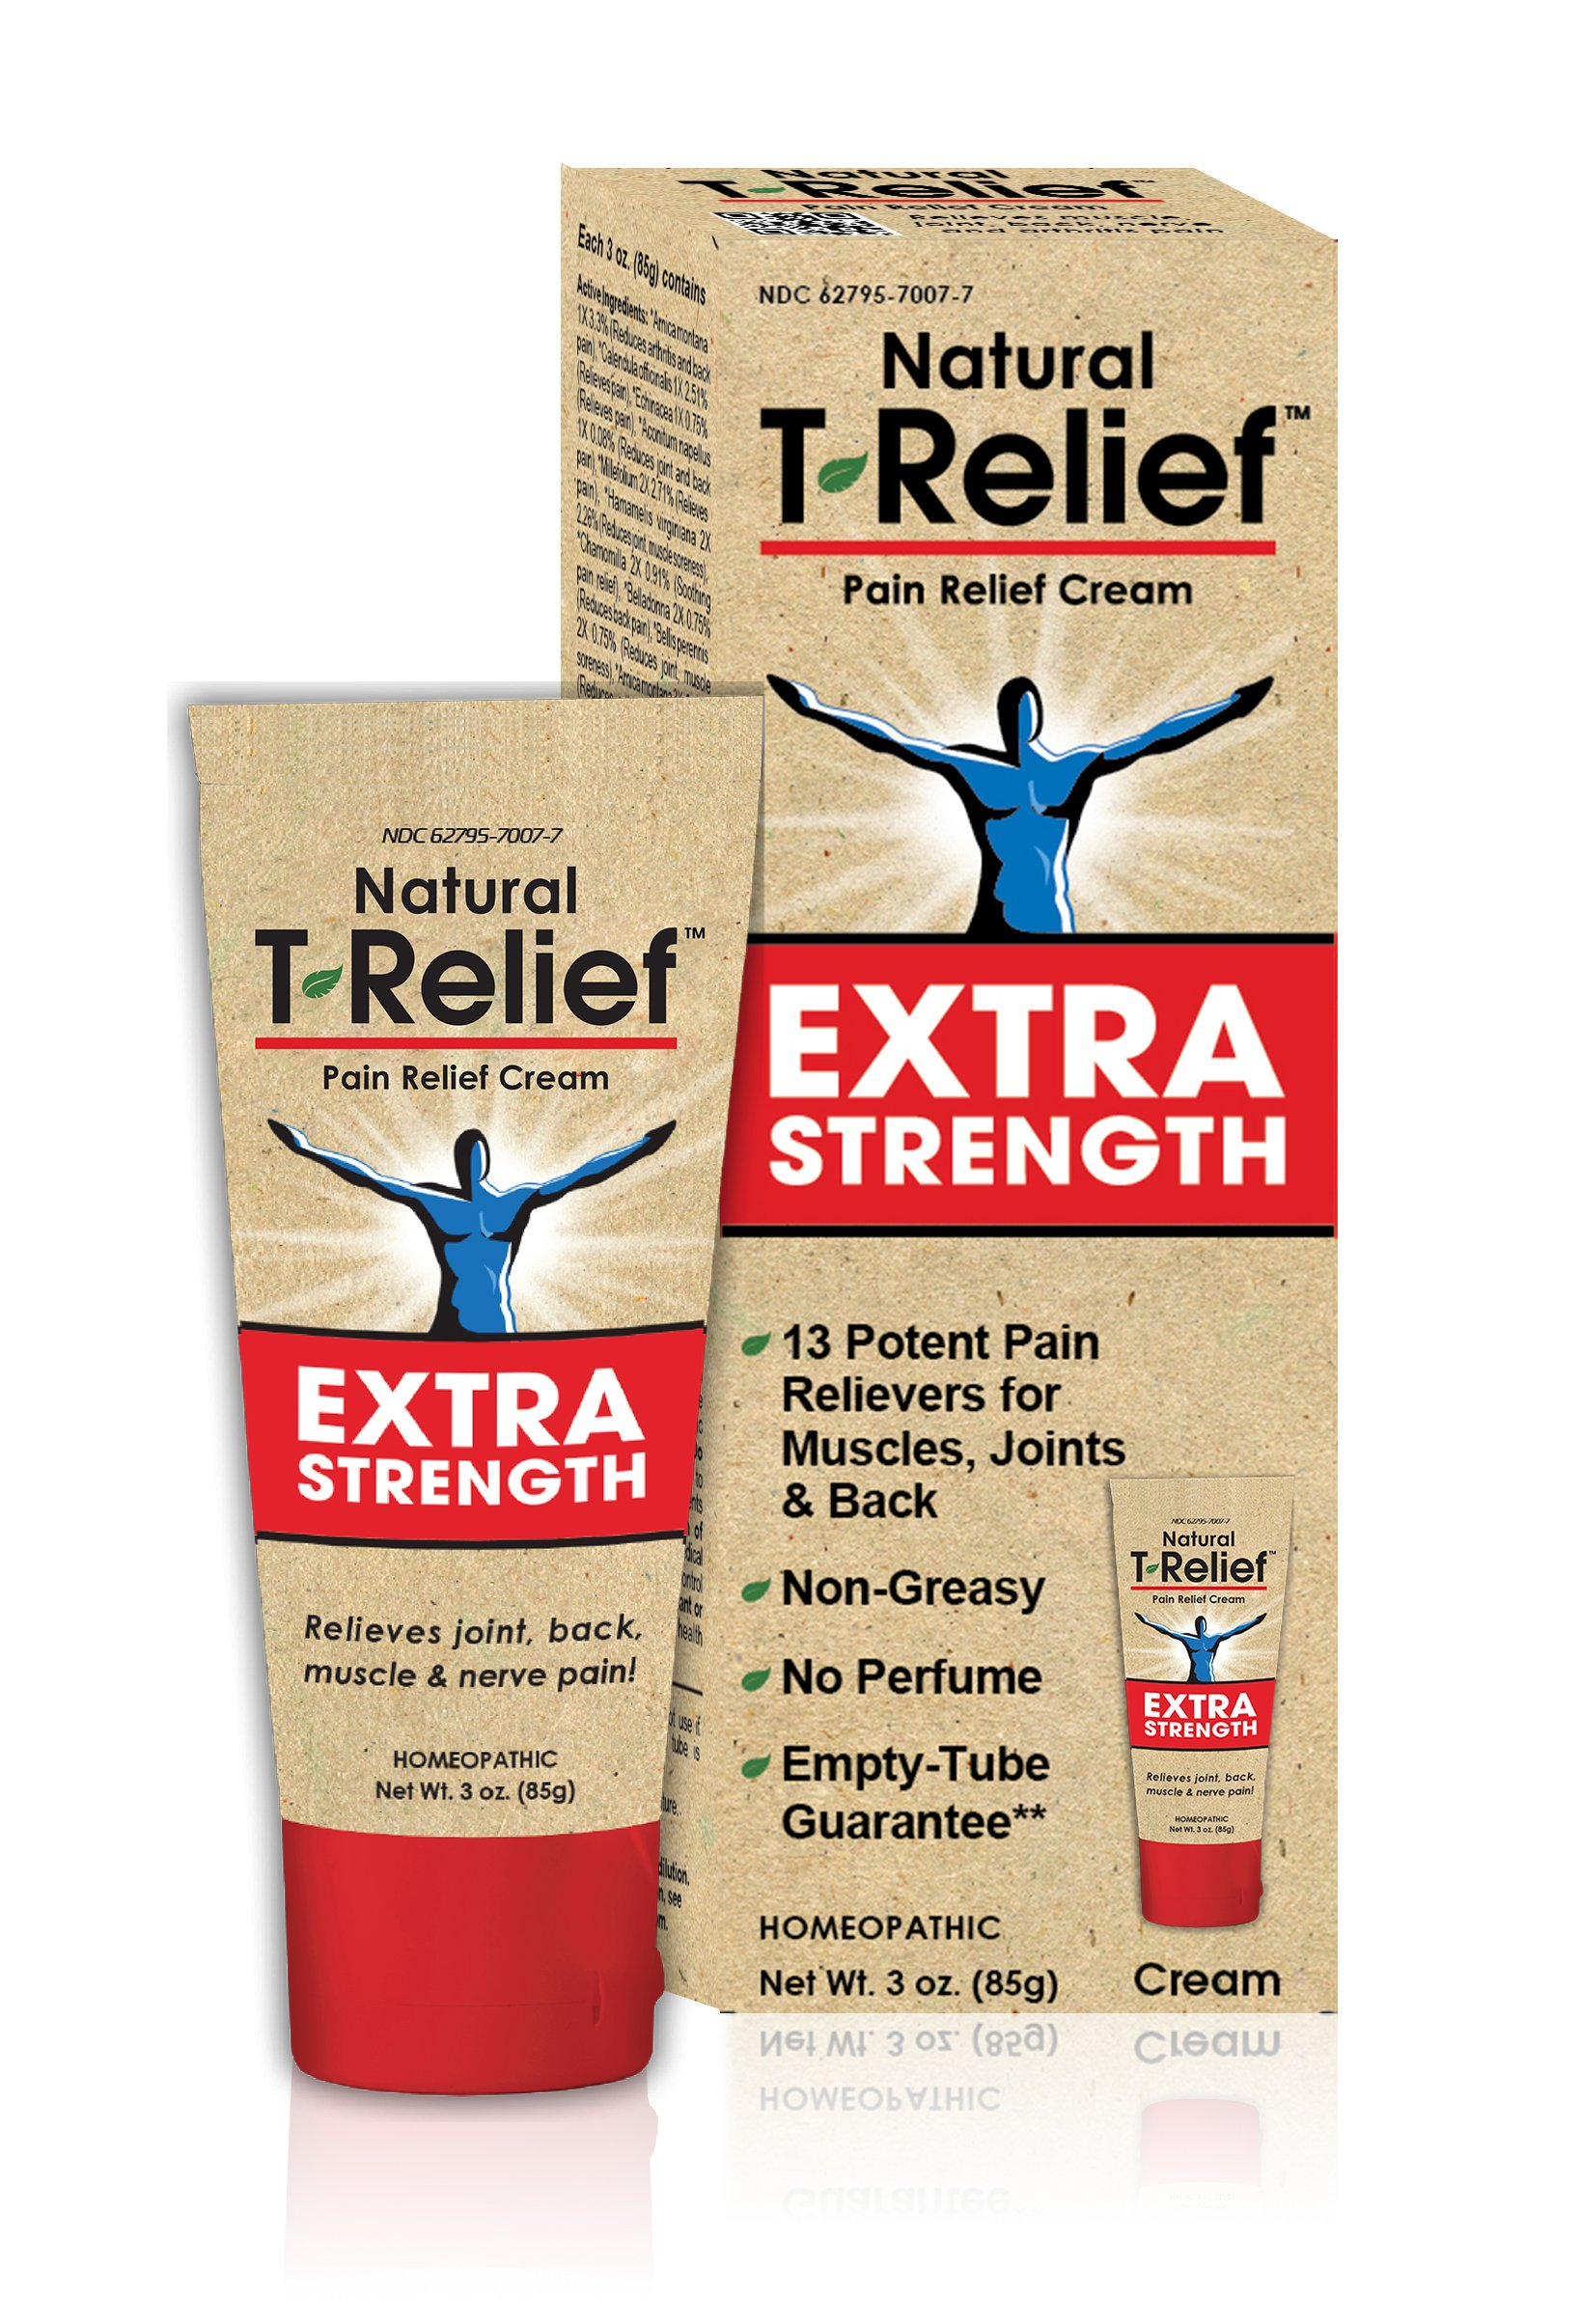 T-Relief Extra Strength Pain Relief Cream for Joint, Back and Muscle Pain and Stiffness - Homeopathic Formula with Arnica - 3 Ounce